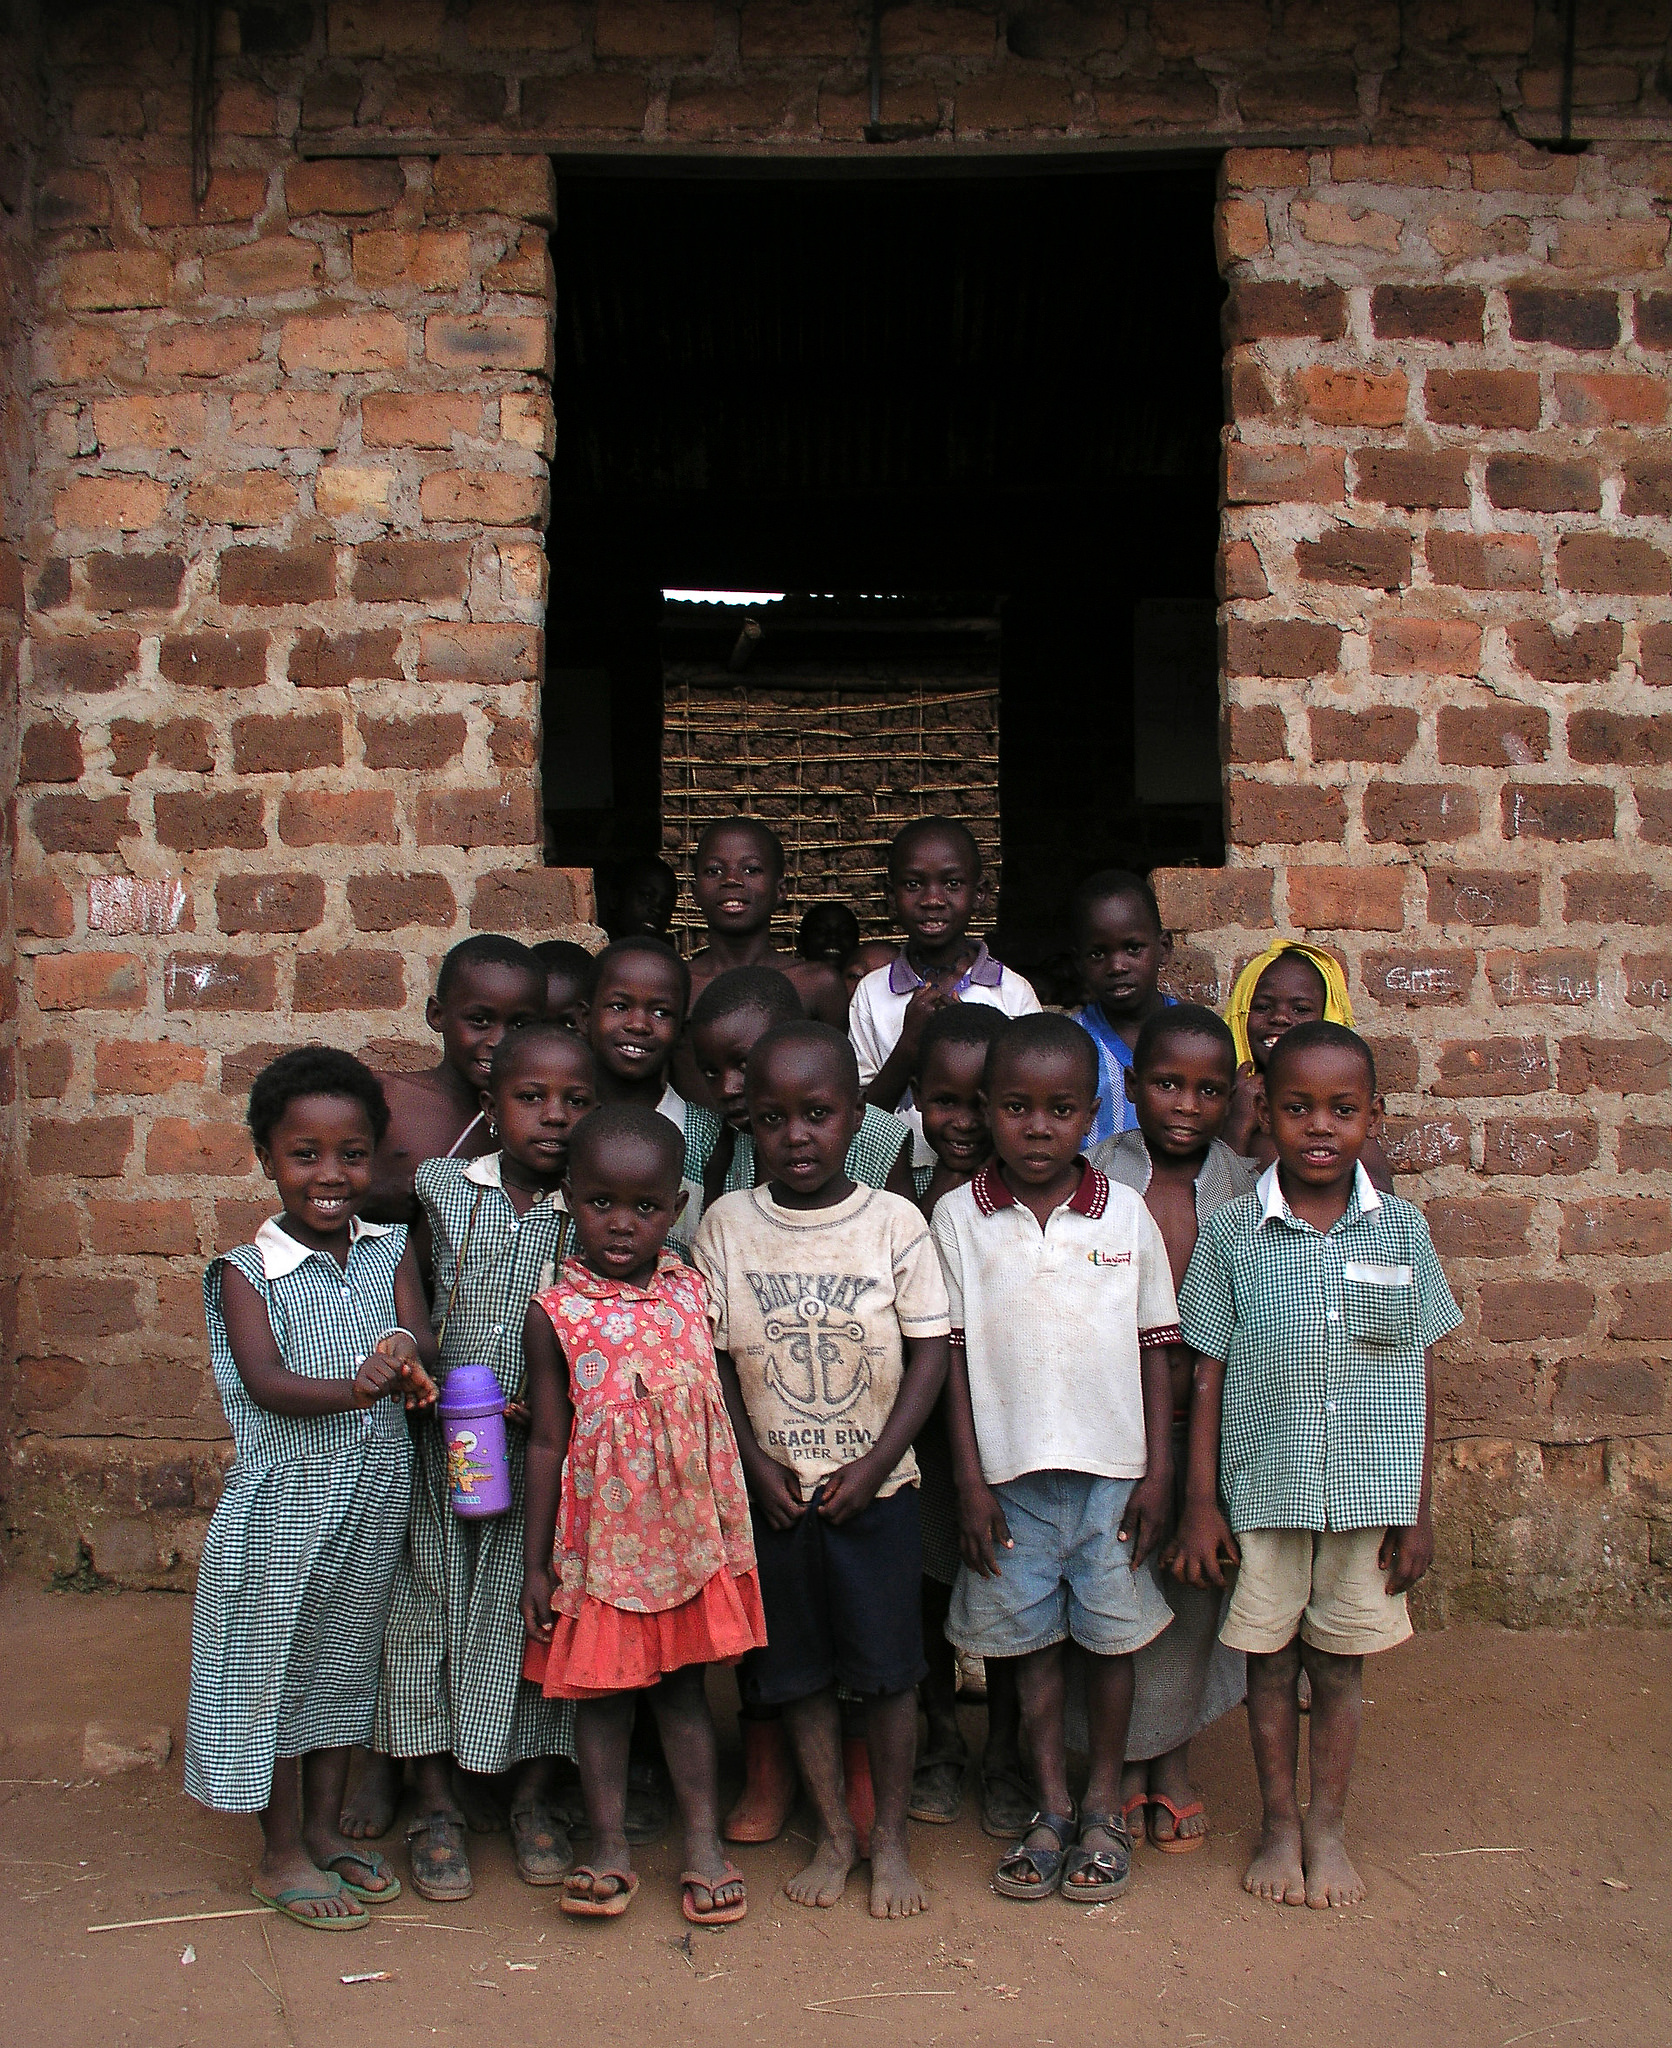 Children in at a school in Kampala, Uganda.    Source   : Arne Hoel / World Bank via Flickr